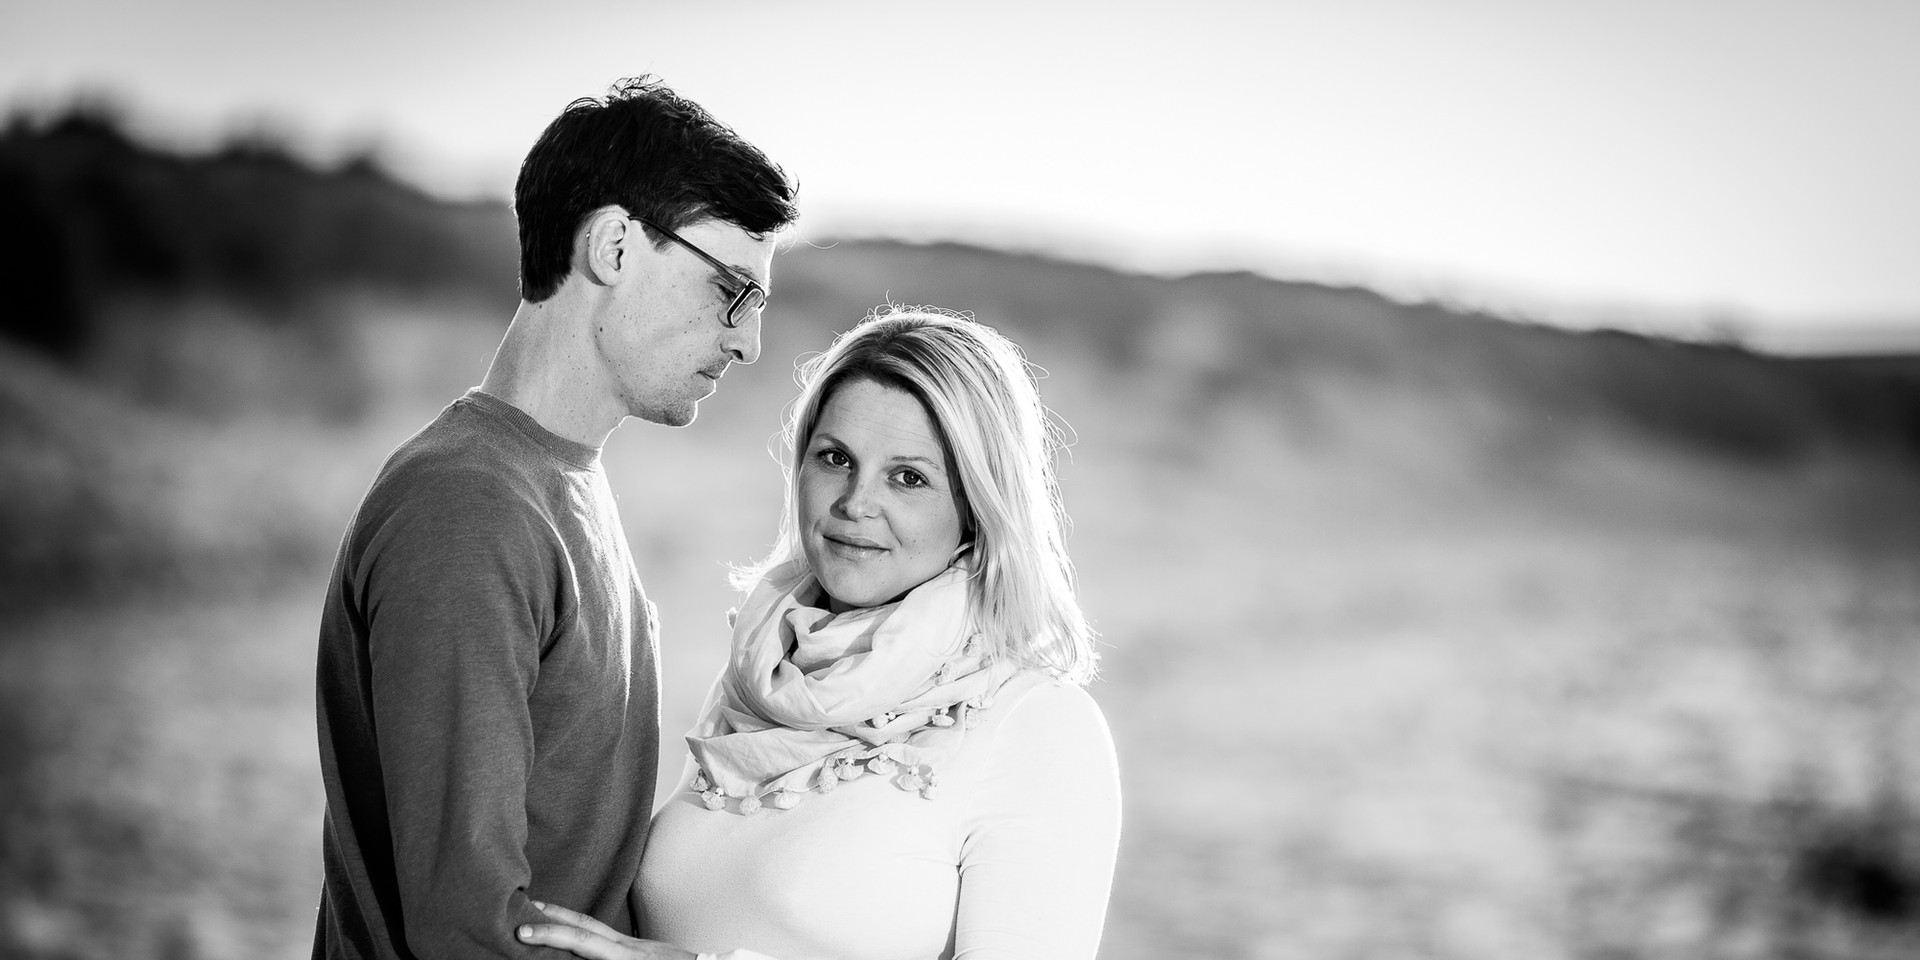 Evoke Family Portrait Photography - Guernsey Photographer